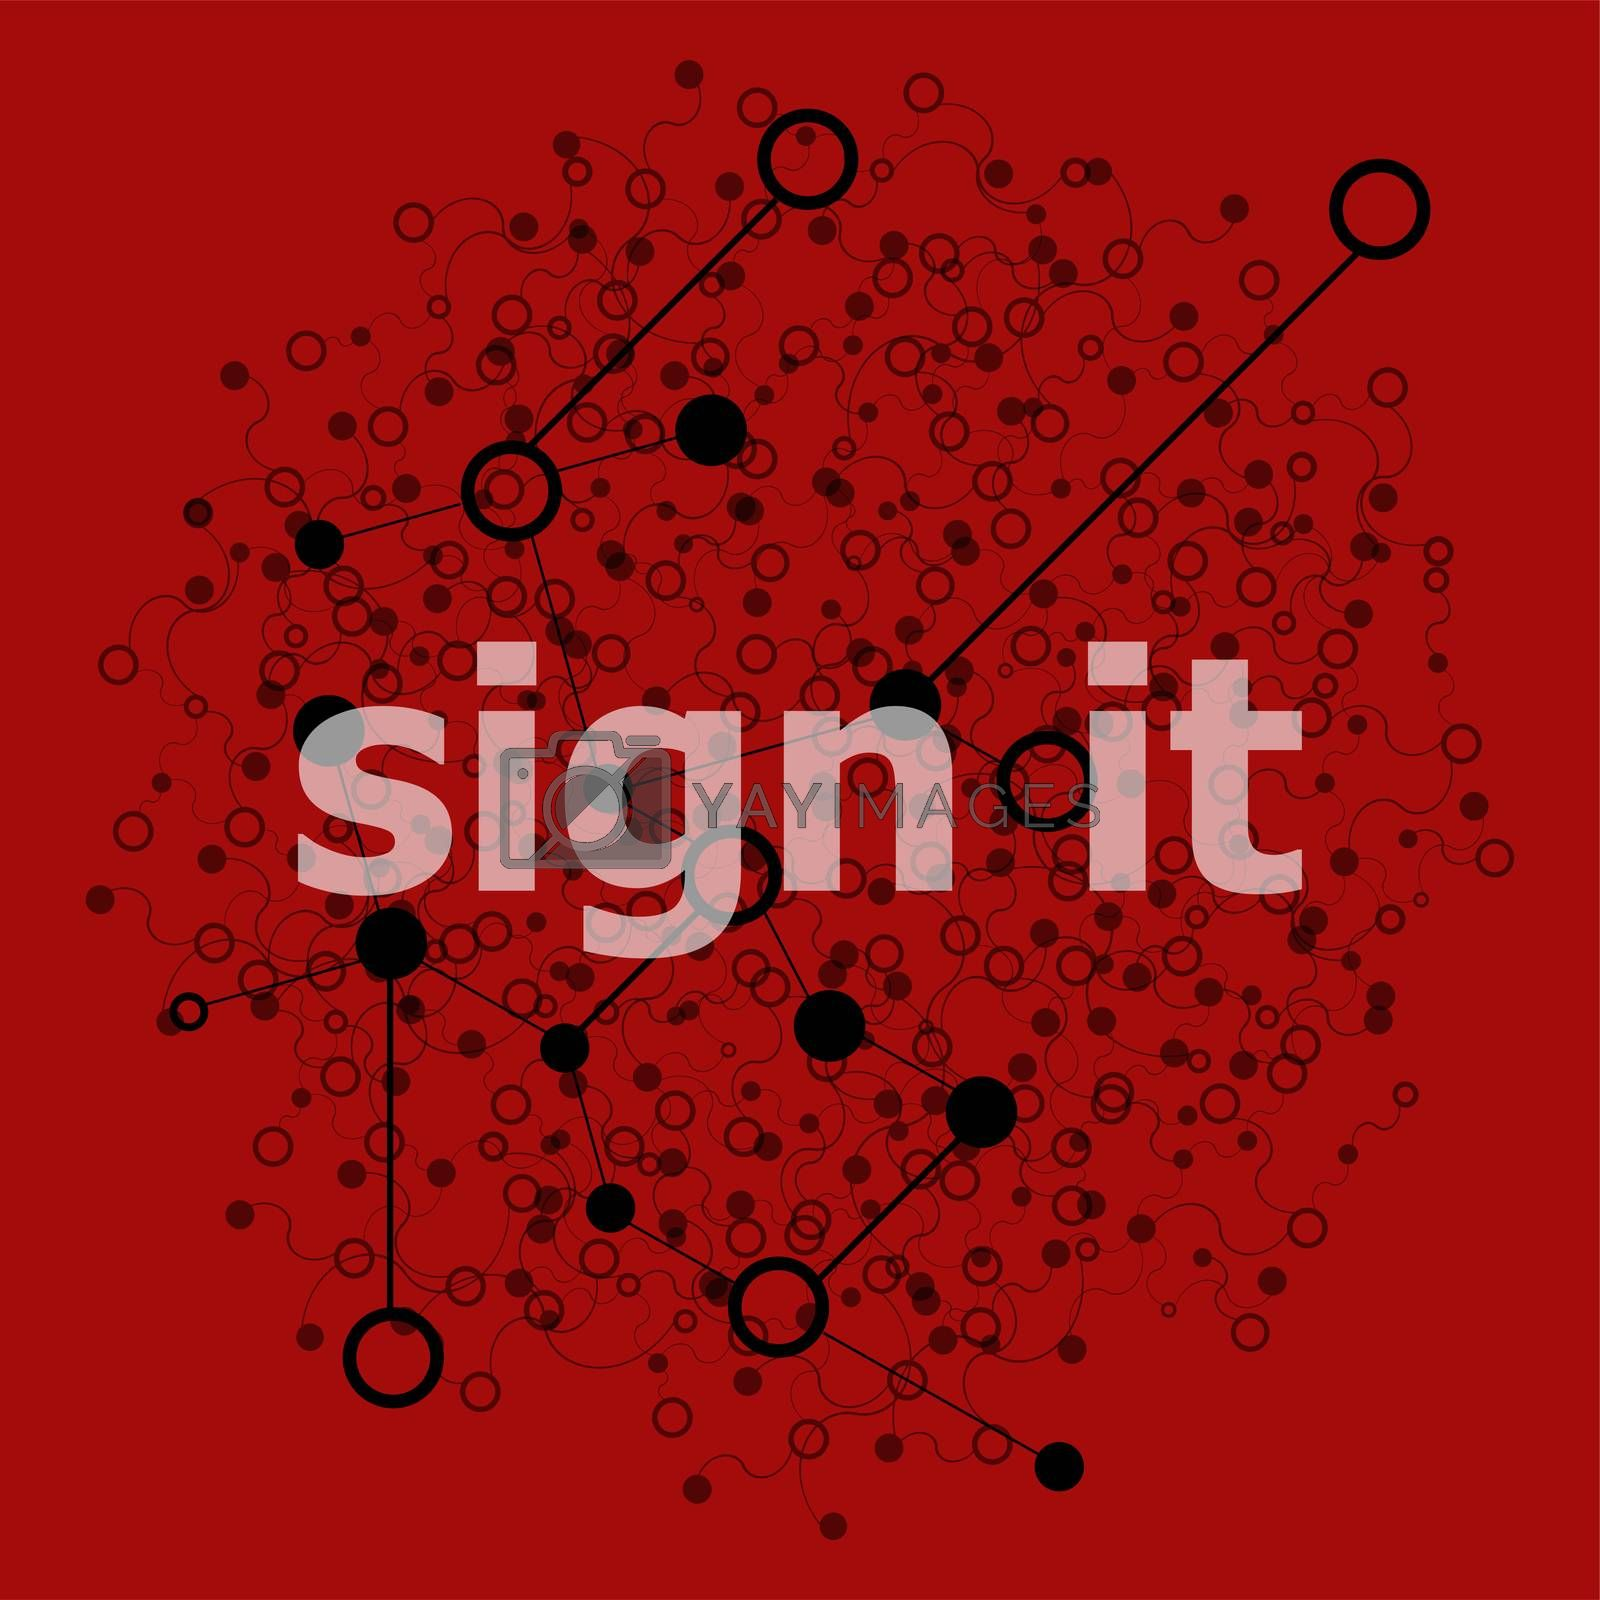 Text Sign it. Protection concept . Abstract geometric background with lines, circles and dots